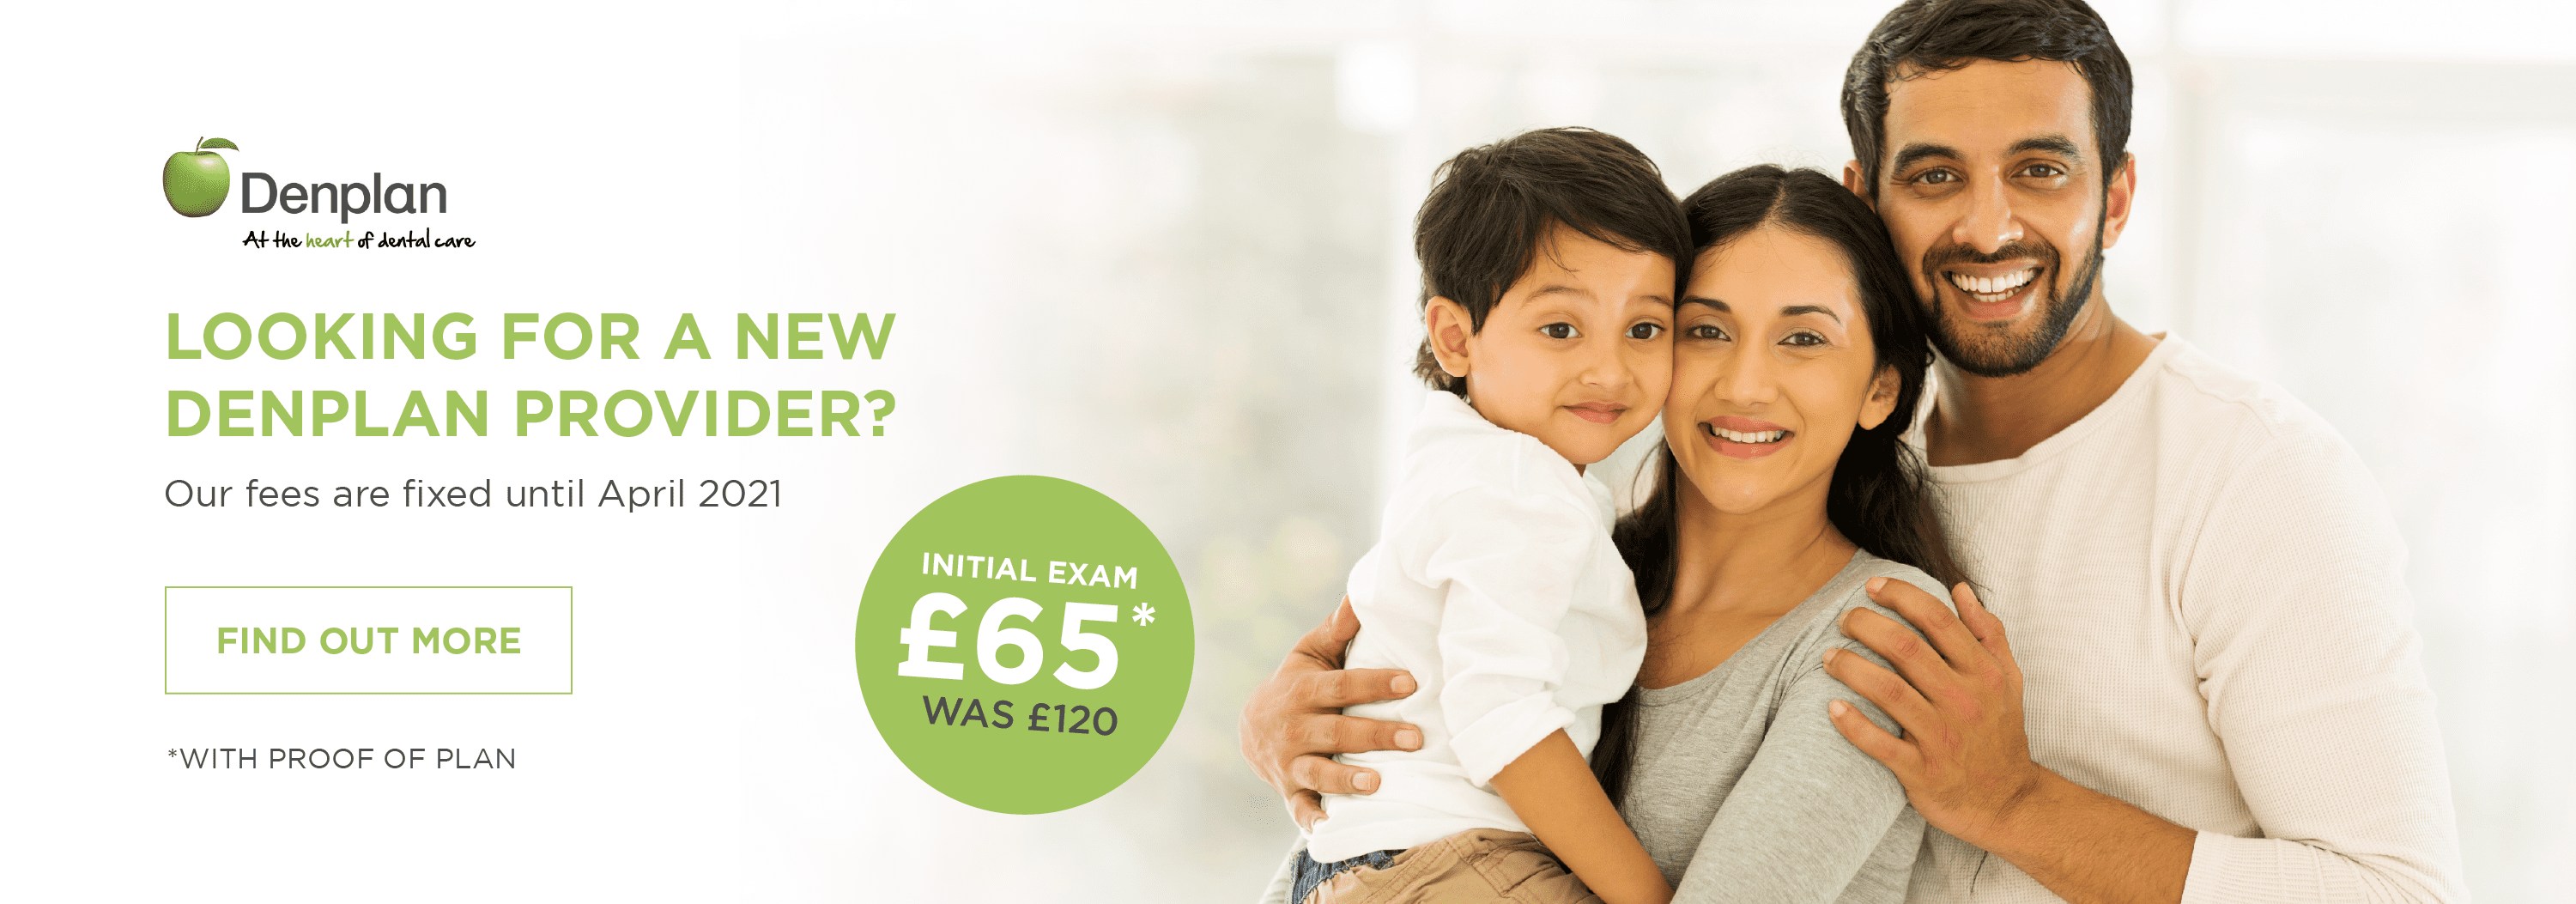 Looking for a new denplan provider?